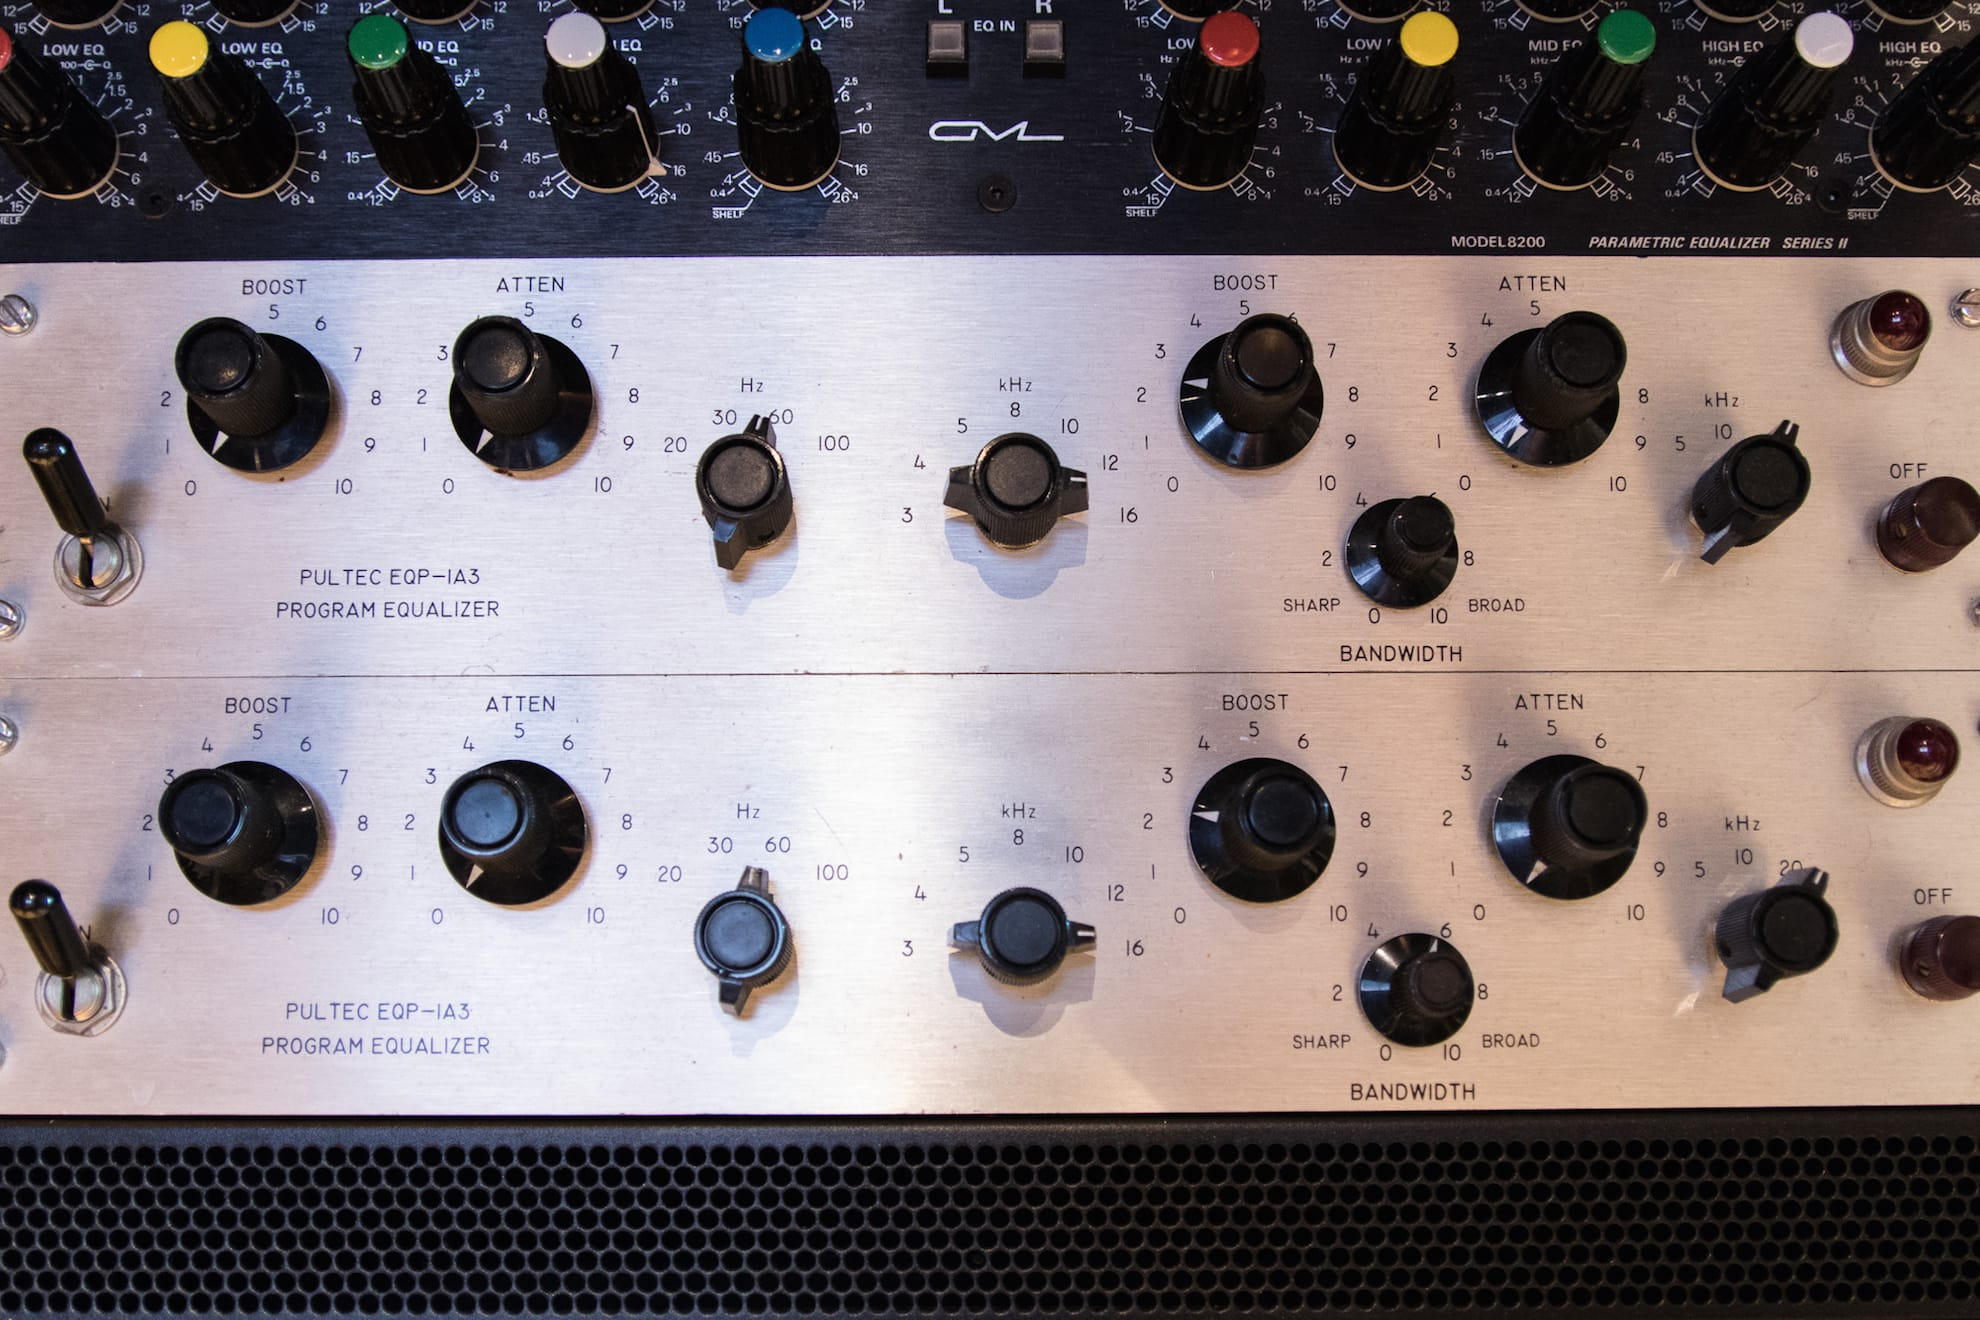 The Pultec EQ explained